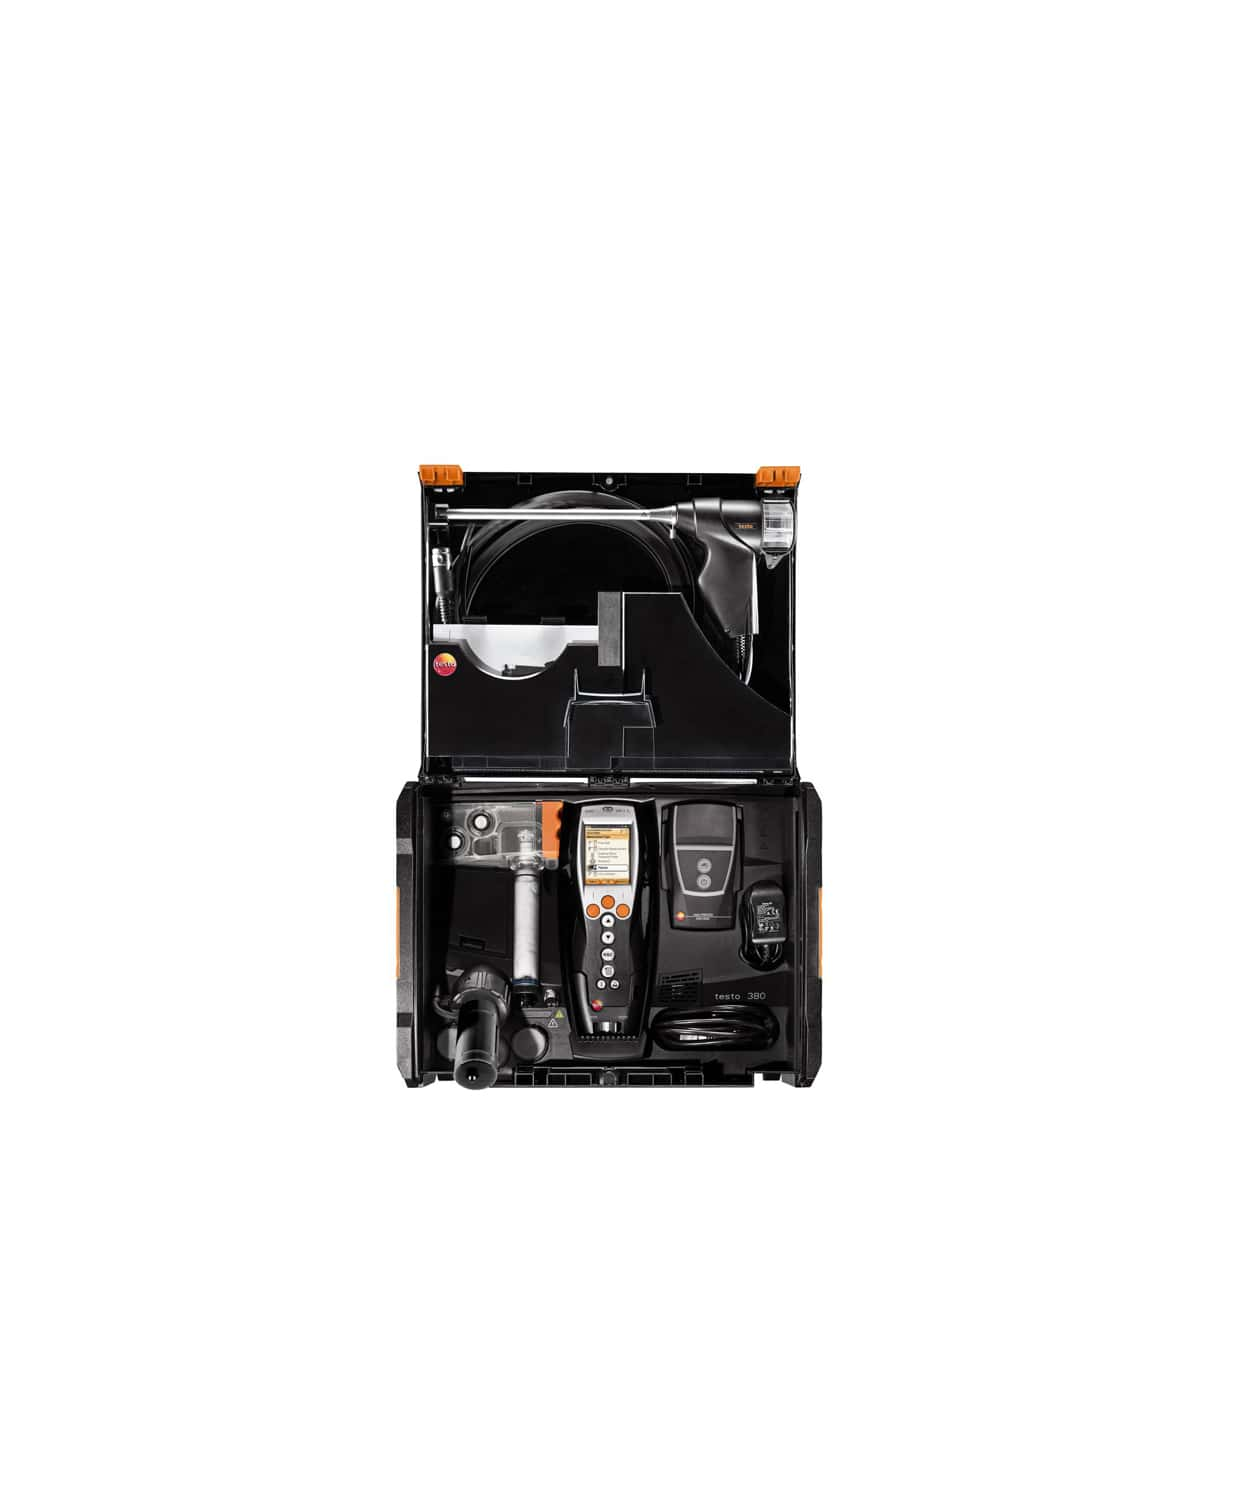 testo 380 - Particulate matter measurement system